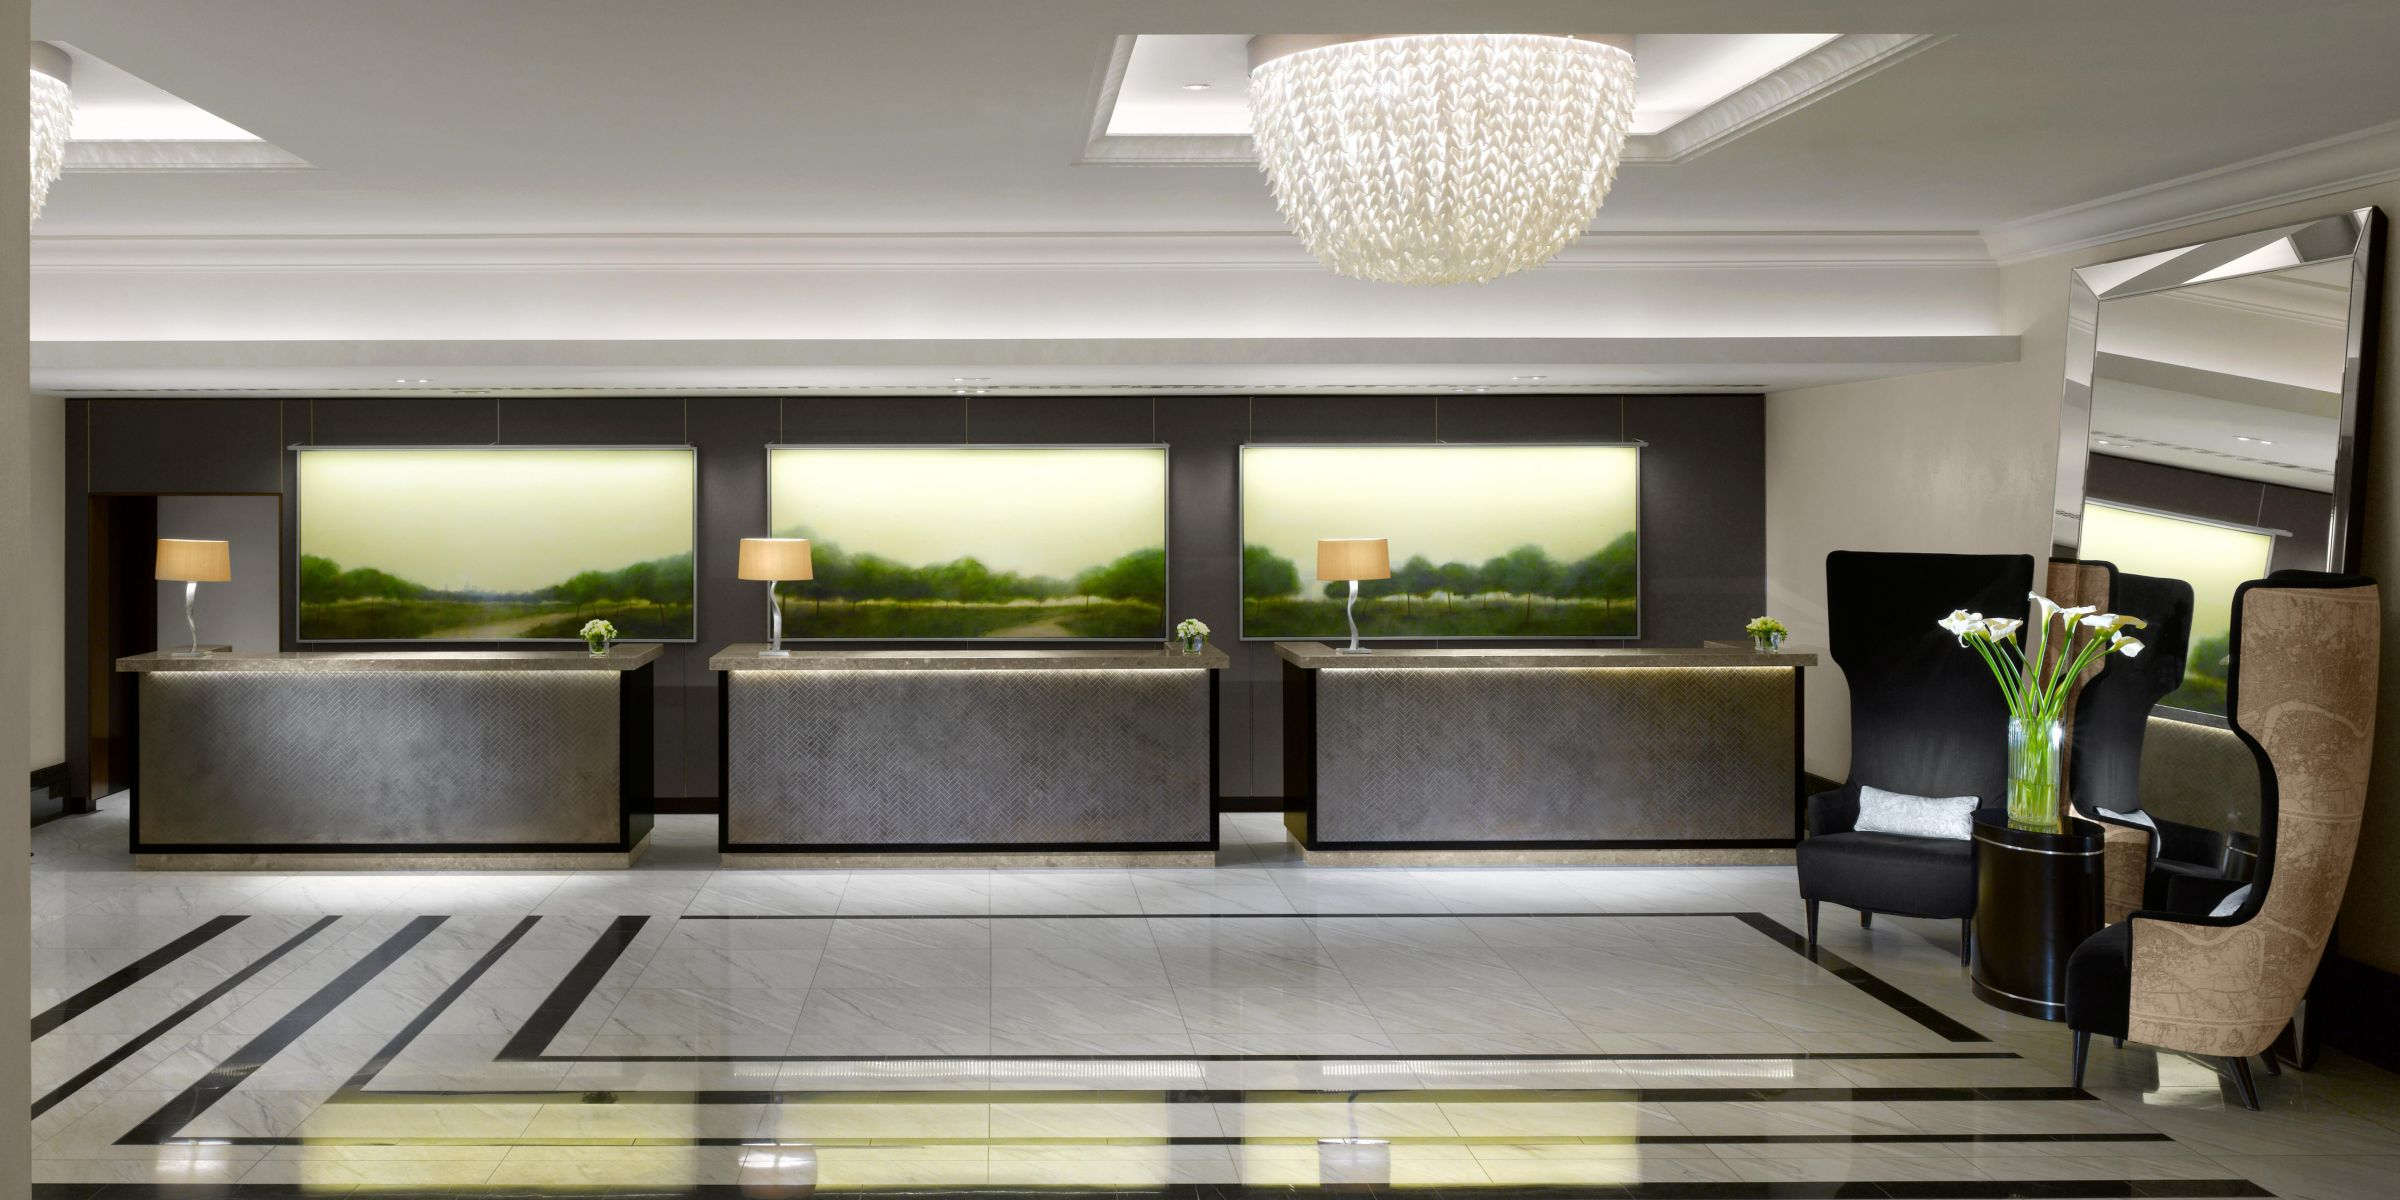 88 5 star hotel reception design lounge area of a hotel for Design hotel 5 star